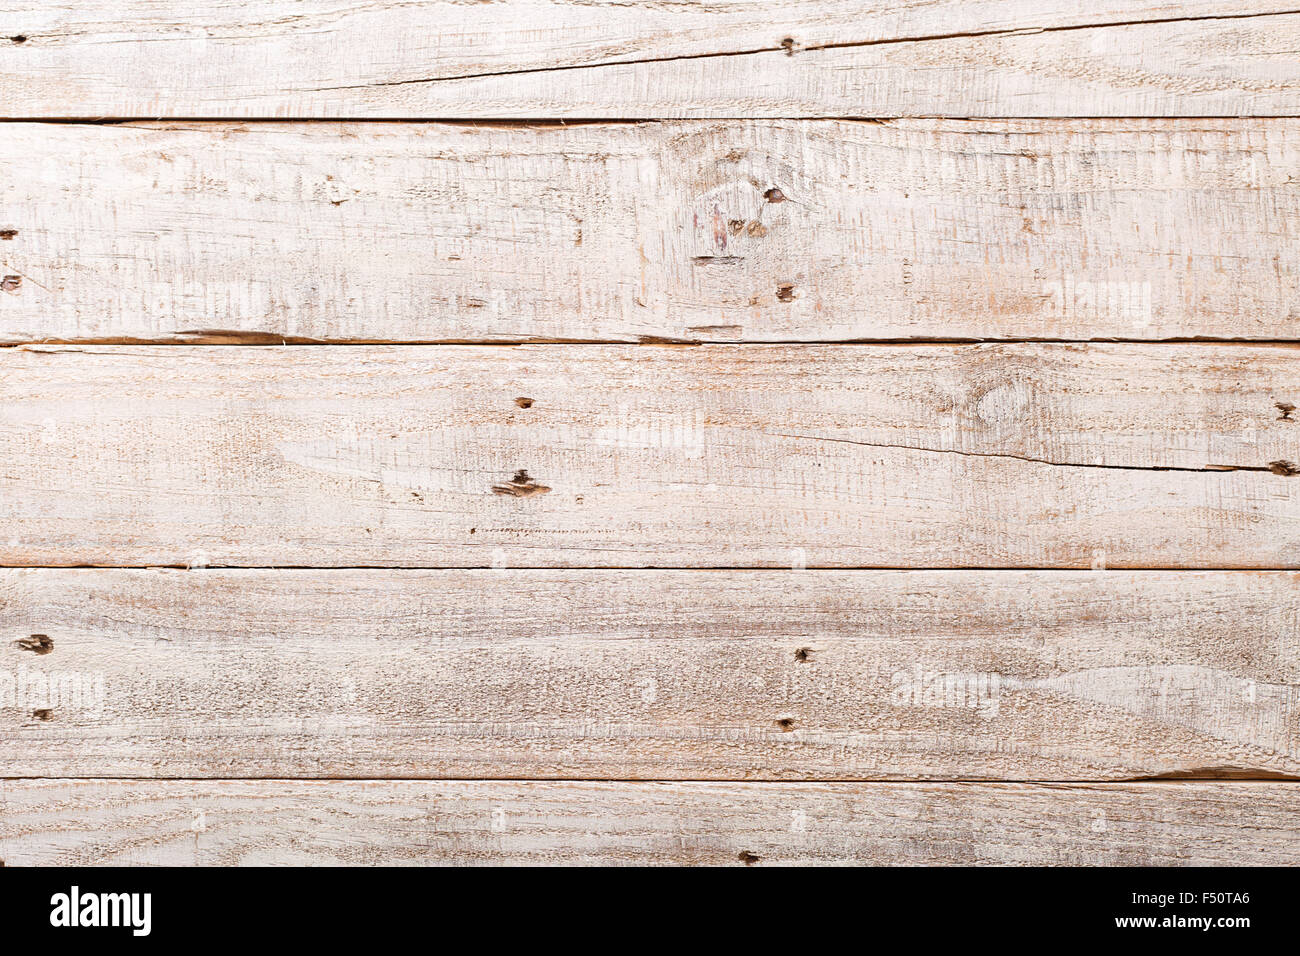 White wooden rustic background with planks and nails - Stock Image